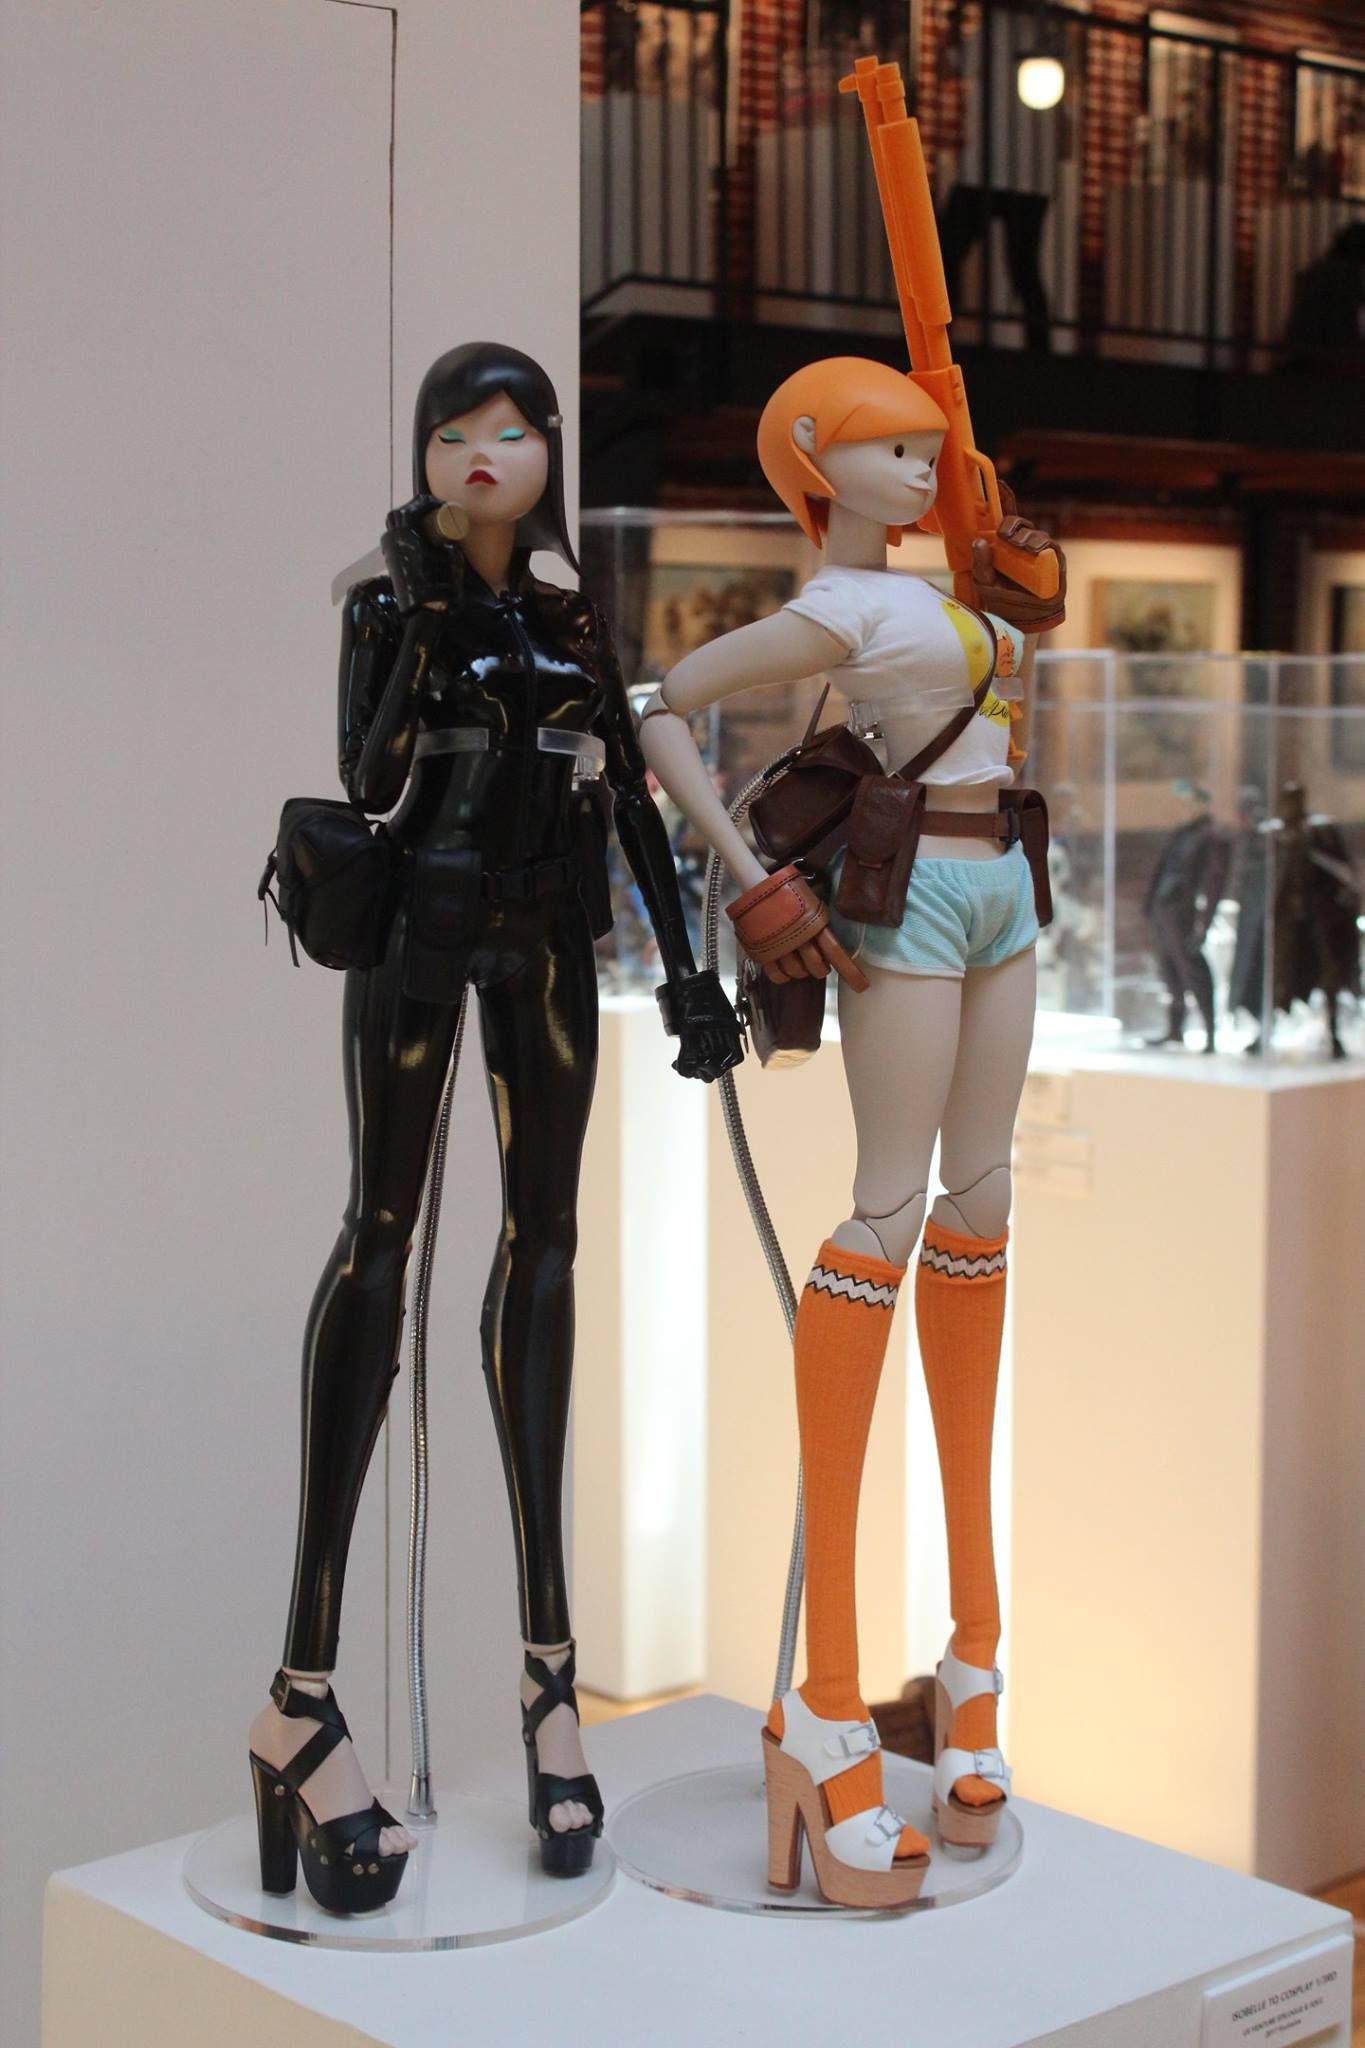 Ashley Wood art and toys on display at US VENTURE at Sparks Gallery. More pics here:  https://www.facebook.com/media/set/?set=a.1375549959232011.1073742098.171245289662490&type=1&l=8c208a0120 #threeA #AshleyWood #AshleyWoodArt #WorldOf3A #WO3A #USVENTURE #SDCC #SDCC2017 #SDCC17 #ComicCon #ComicConvention #SanDiego #SparksGallery #ArtShow #California